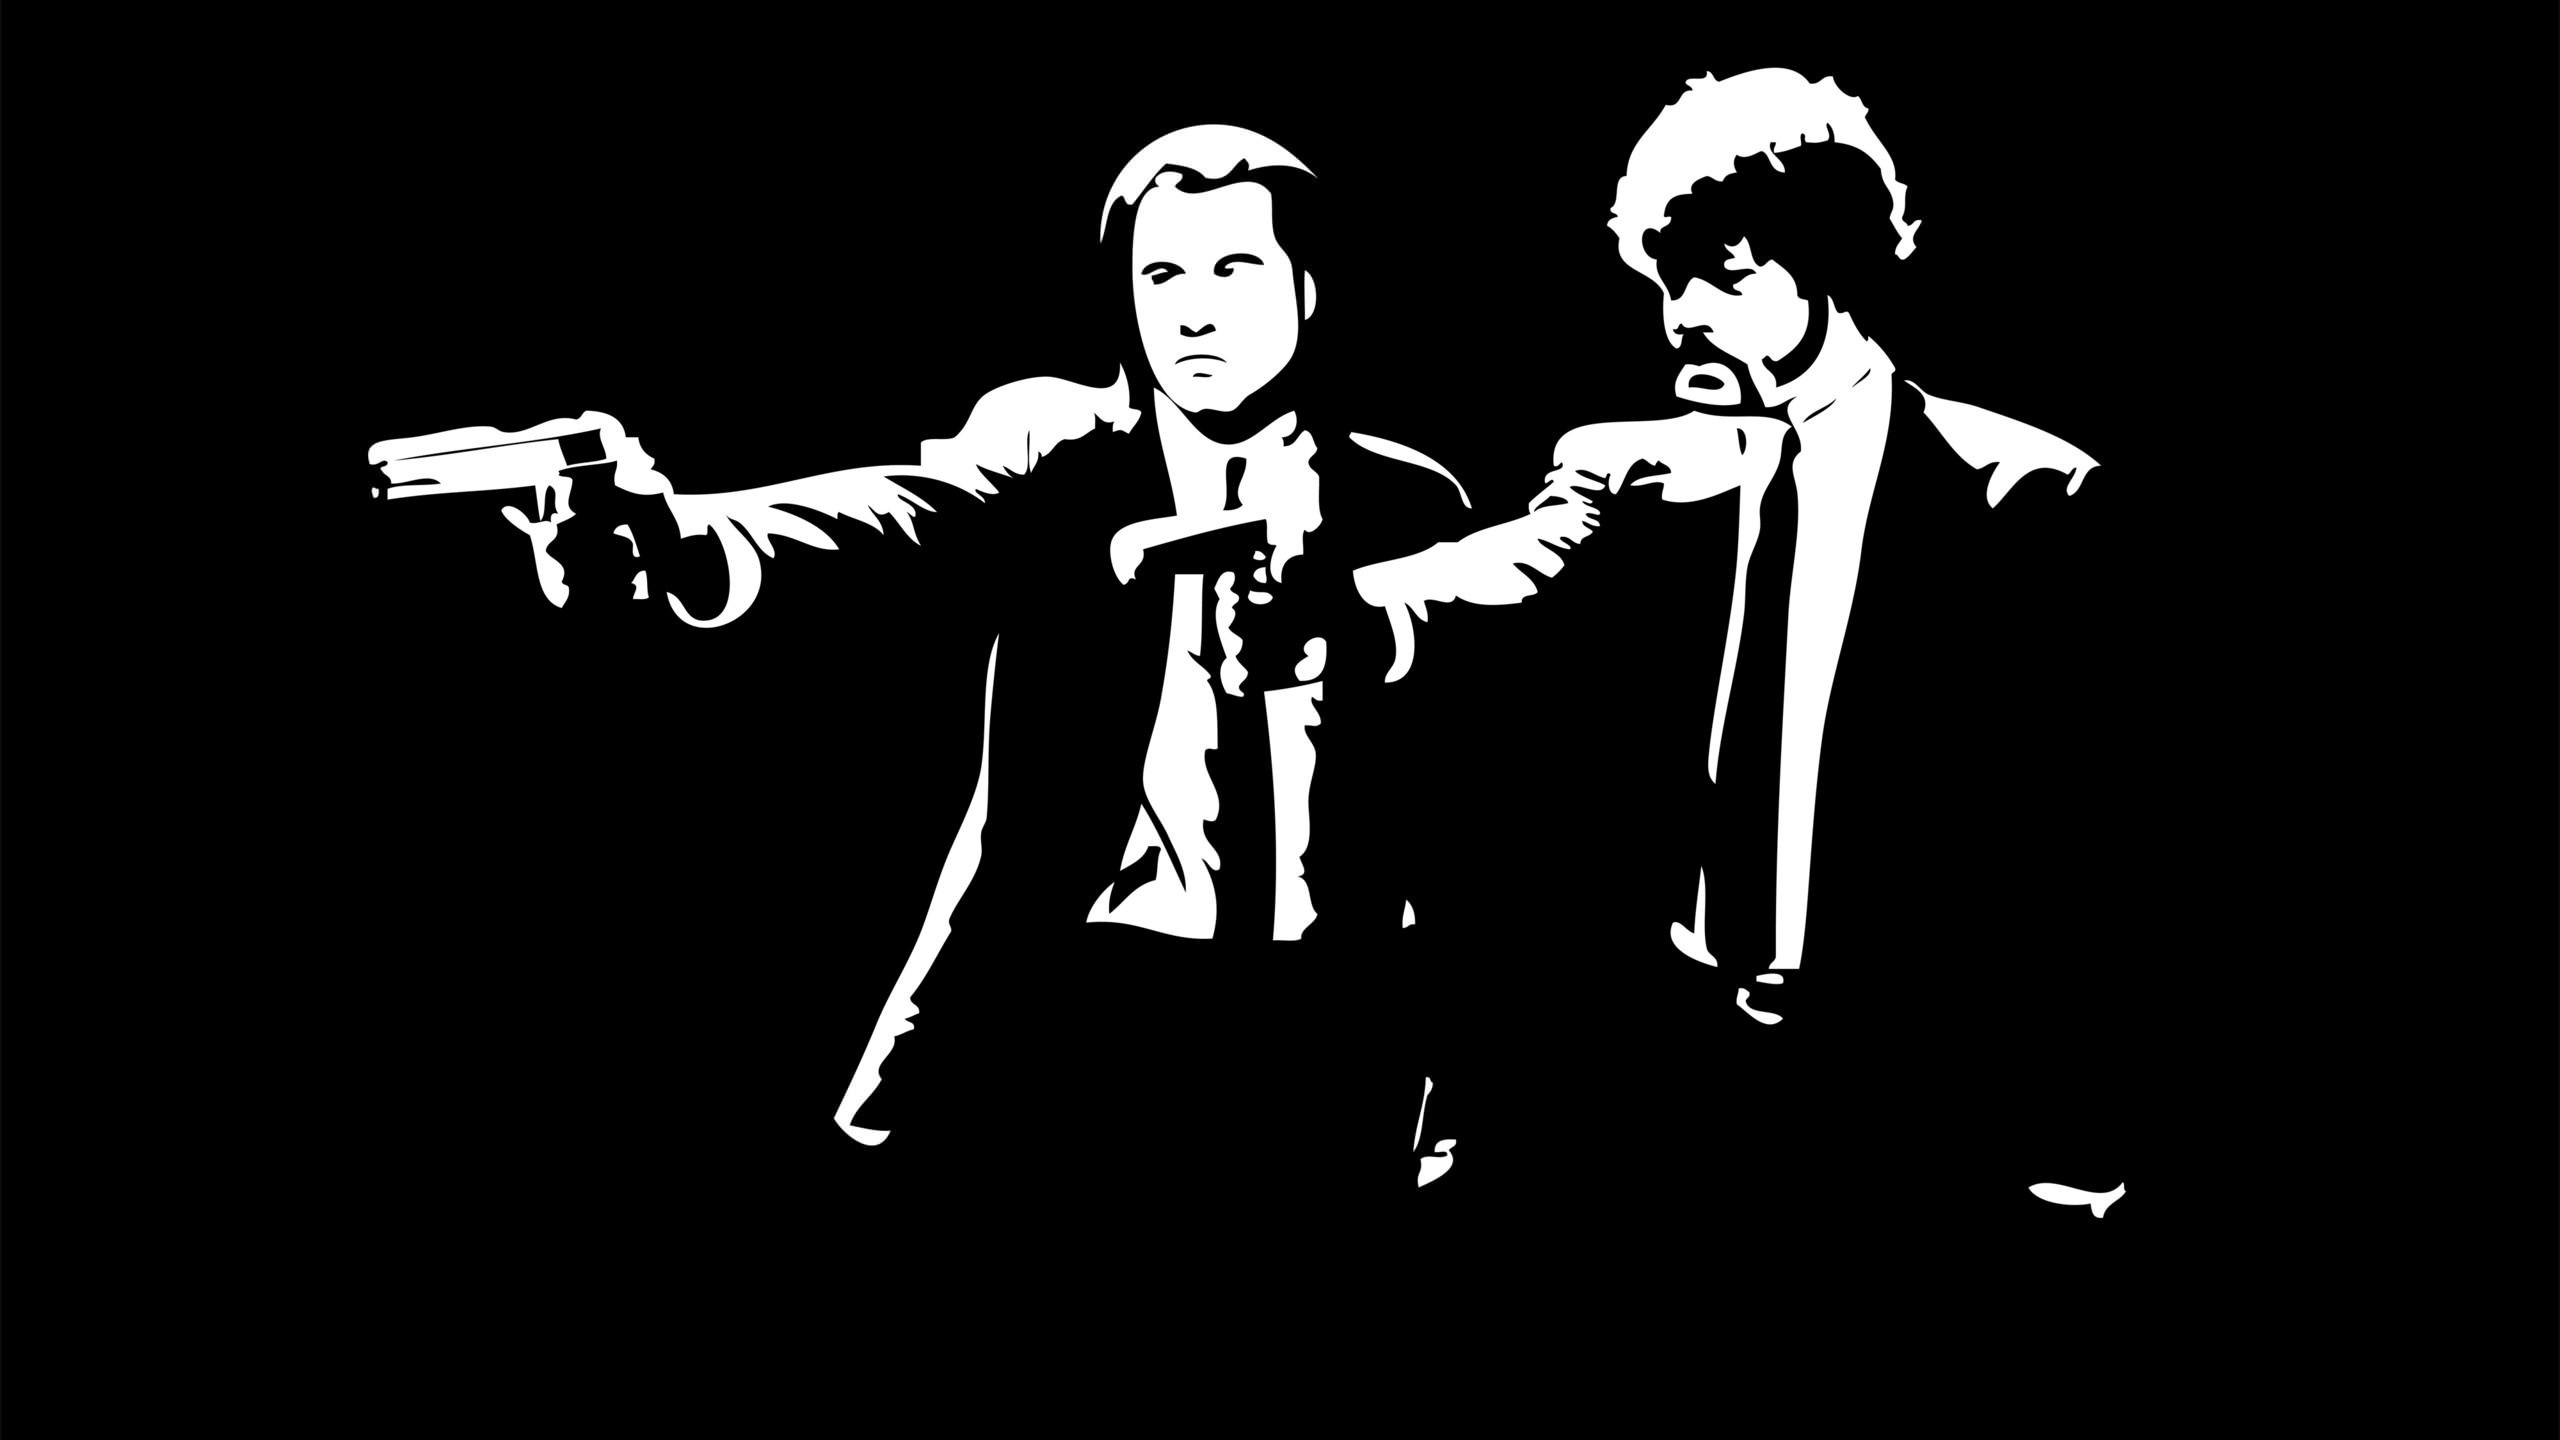 Bible Verse And Image Pulp Fiction Wallpaper: Pulp Fiction Wallpapers (72+ Images